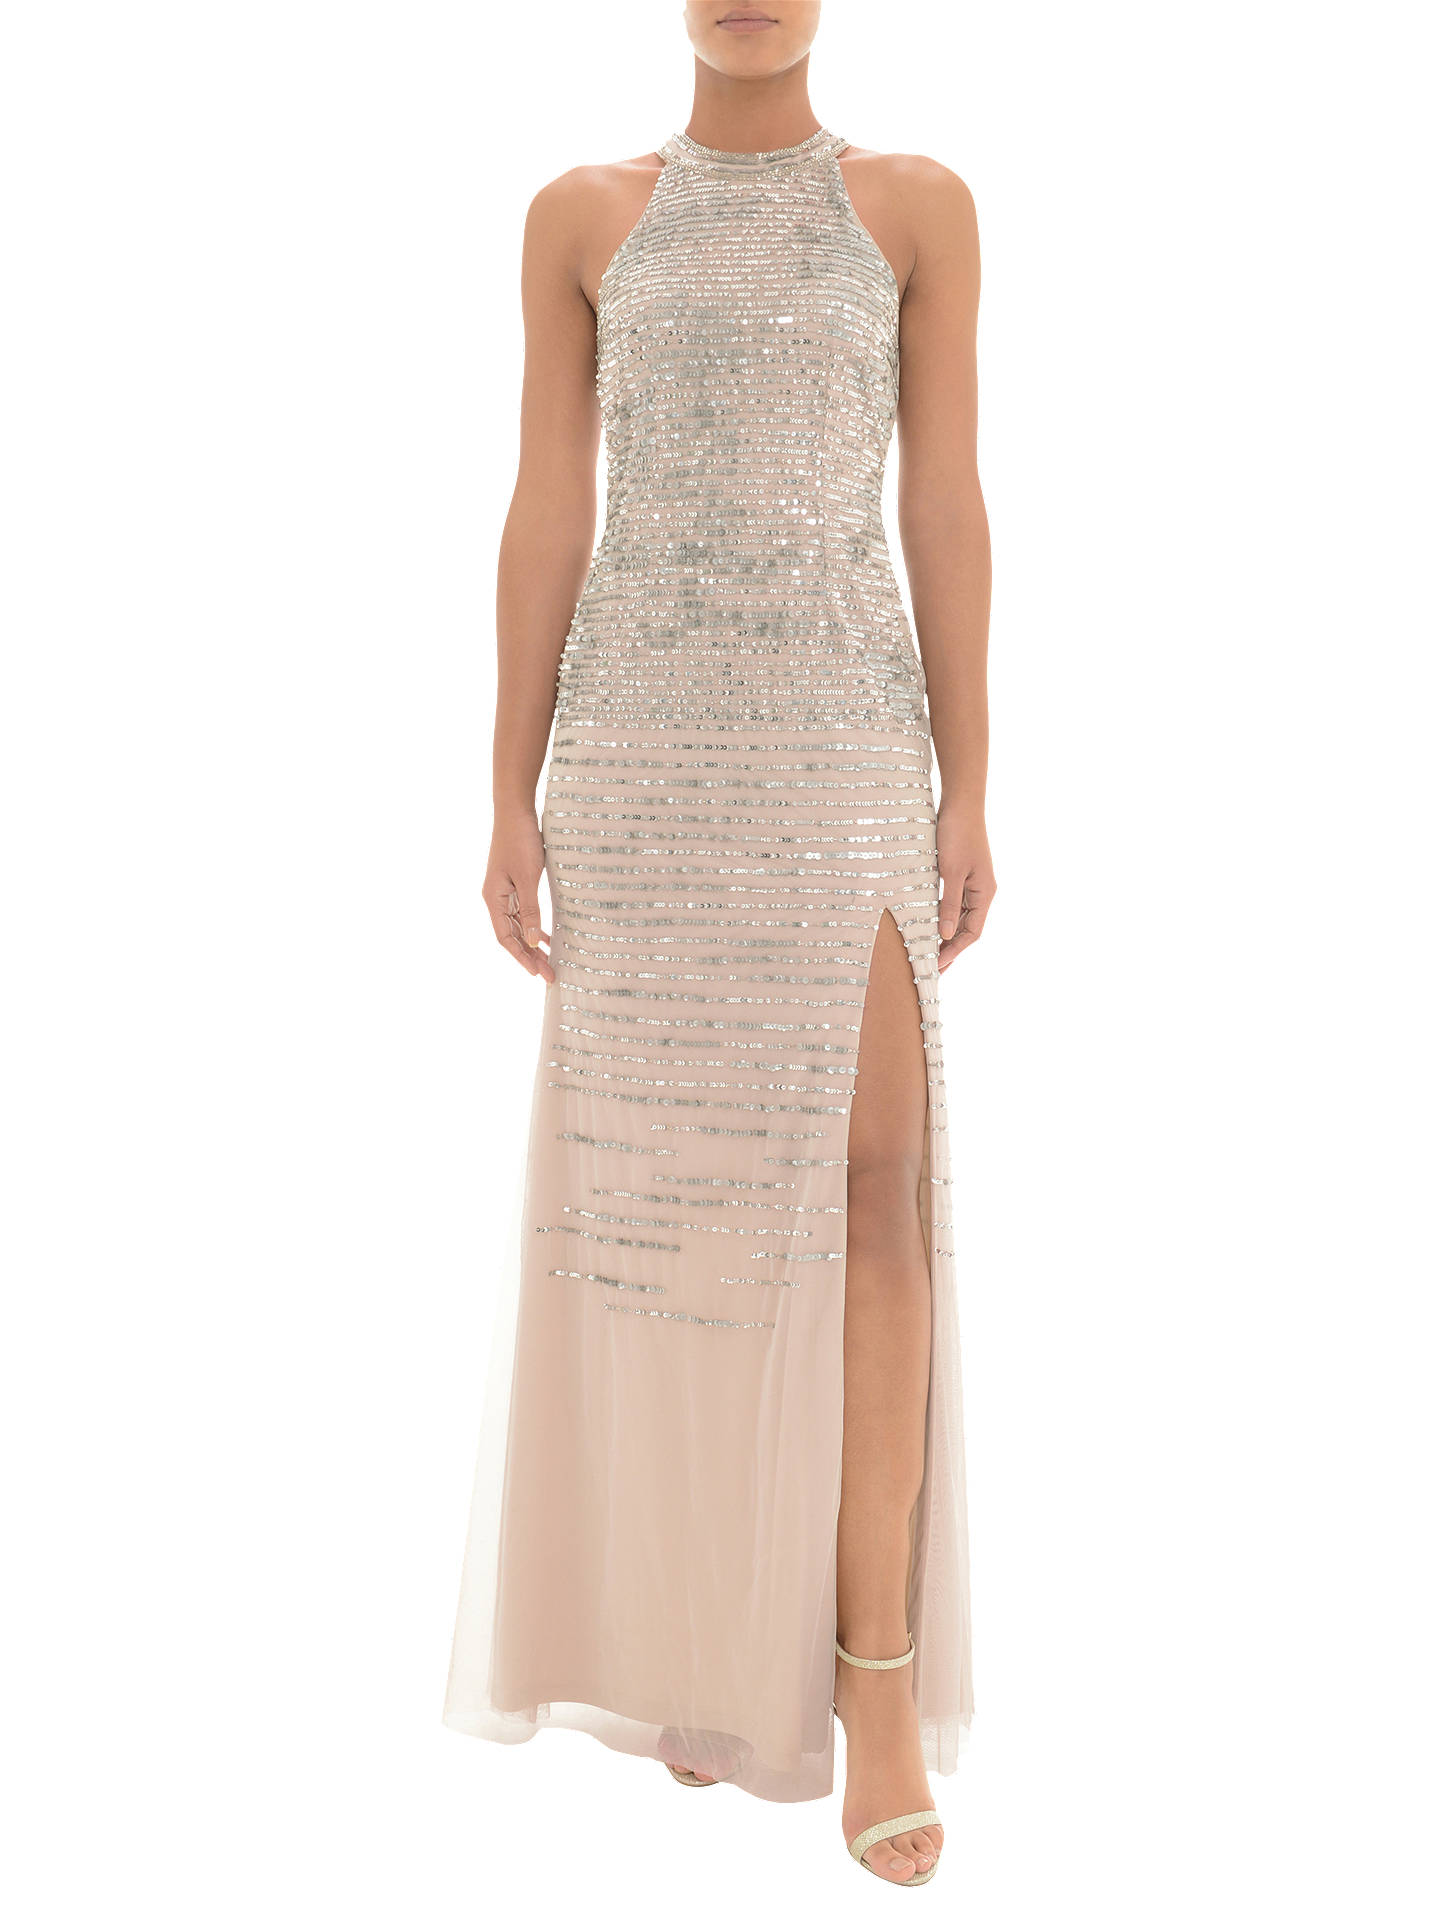 c29e5eba Buy Adrianna Papell Sequin Halterneck Dress, Silver/Nude, 6 Online at  johnlewis.